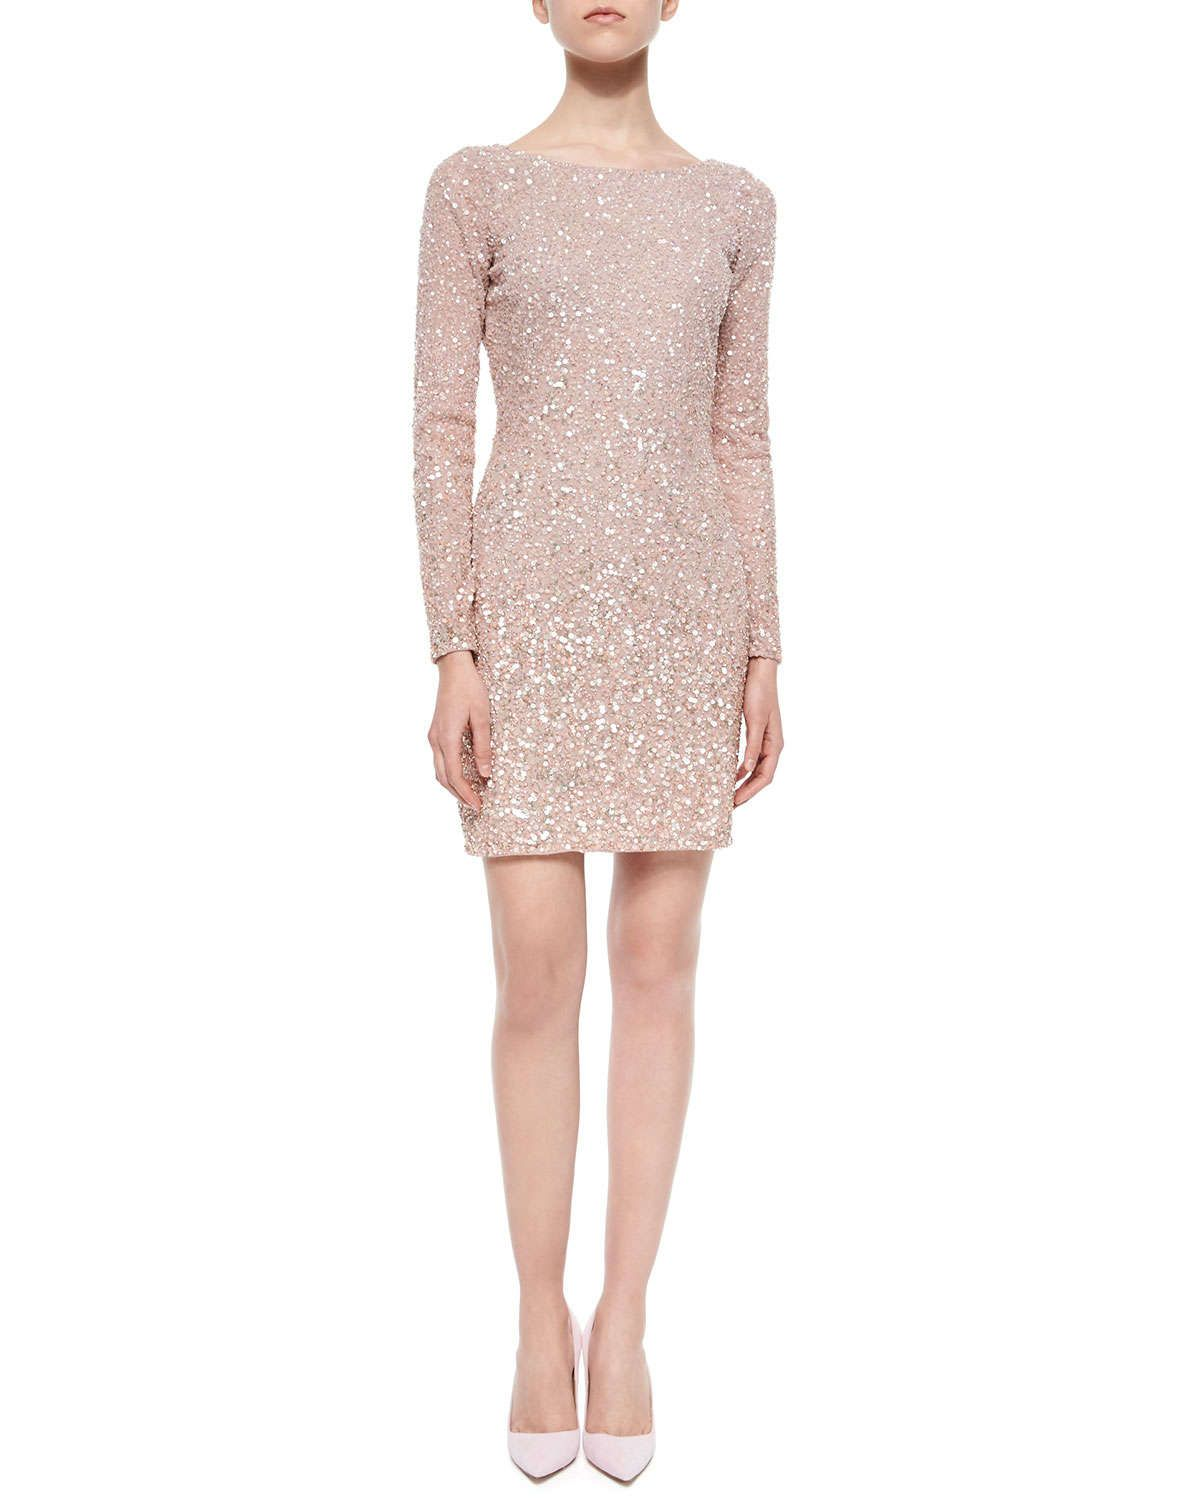 566650bad15 Aidan Mattox Long-Sleeve Sequined Cocktail Dress